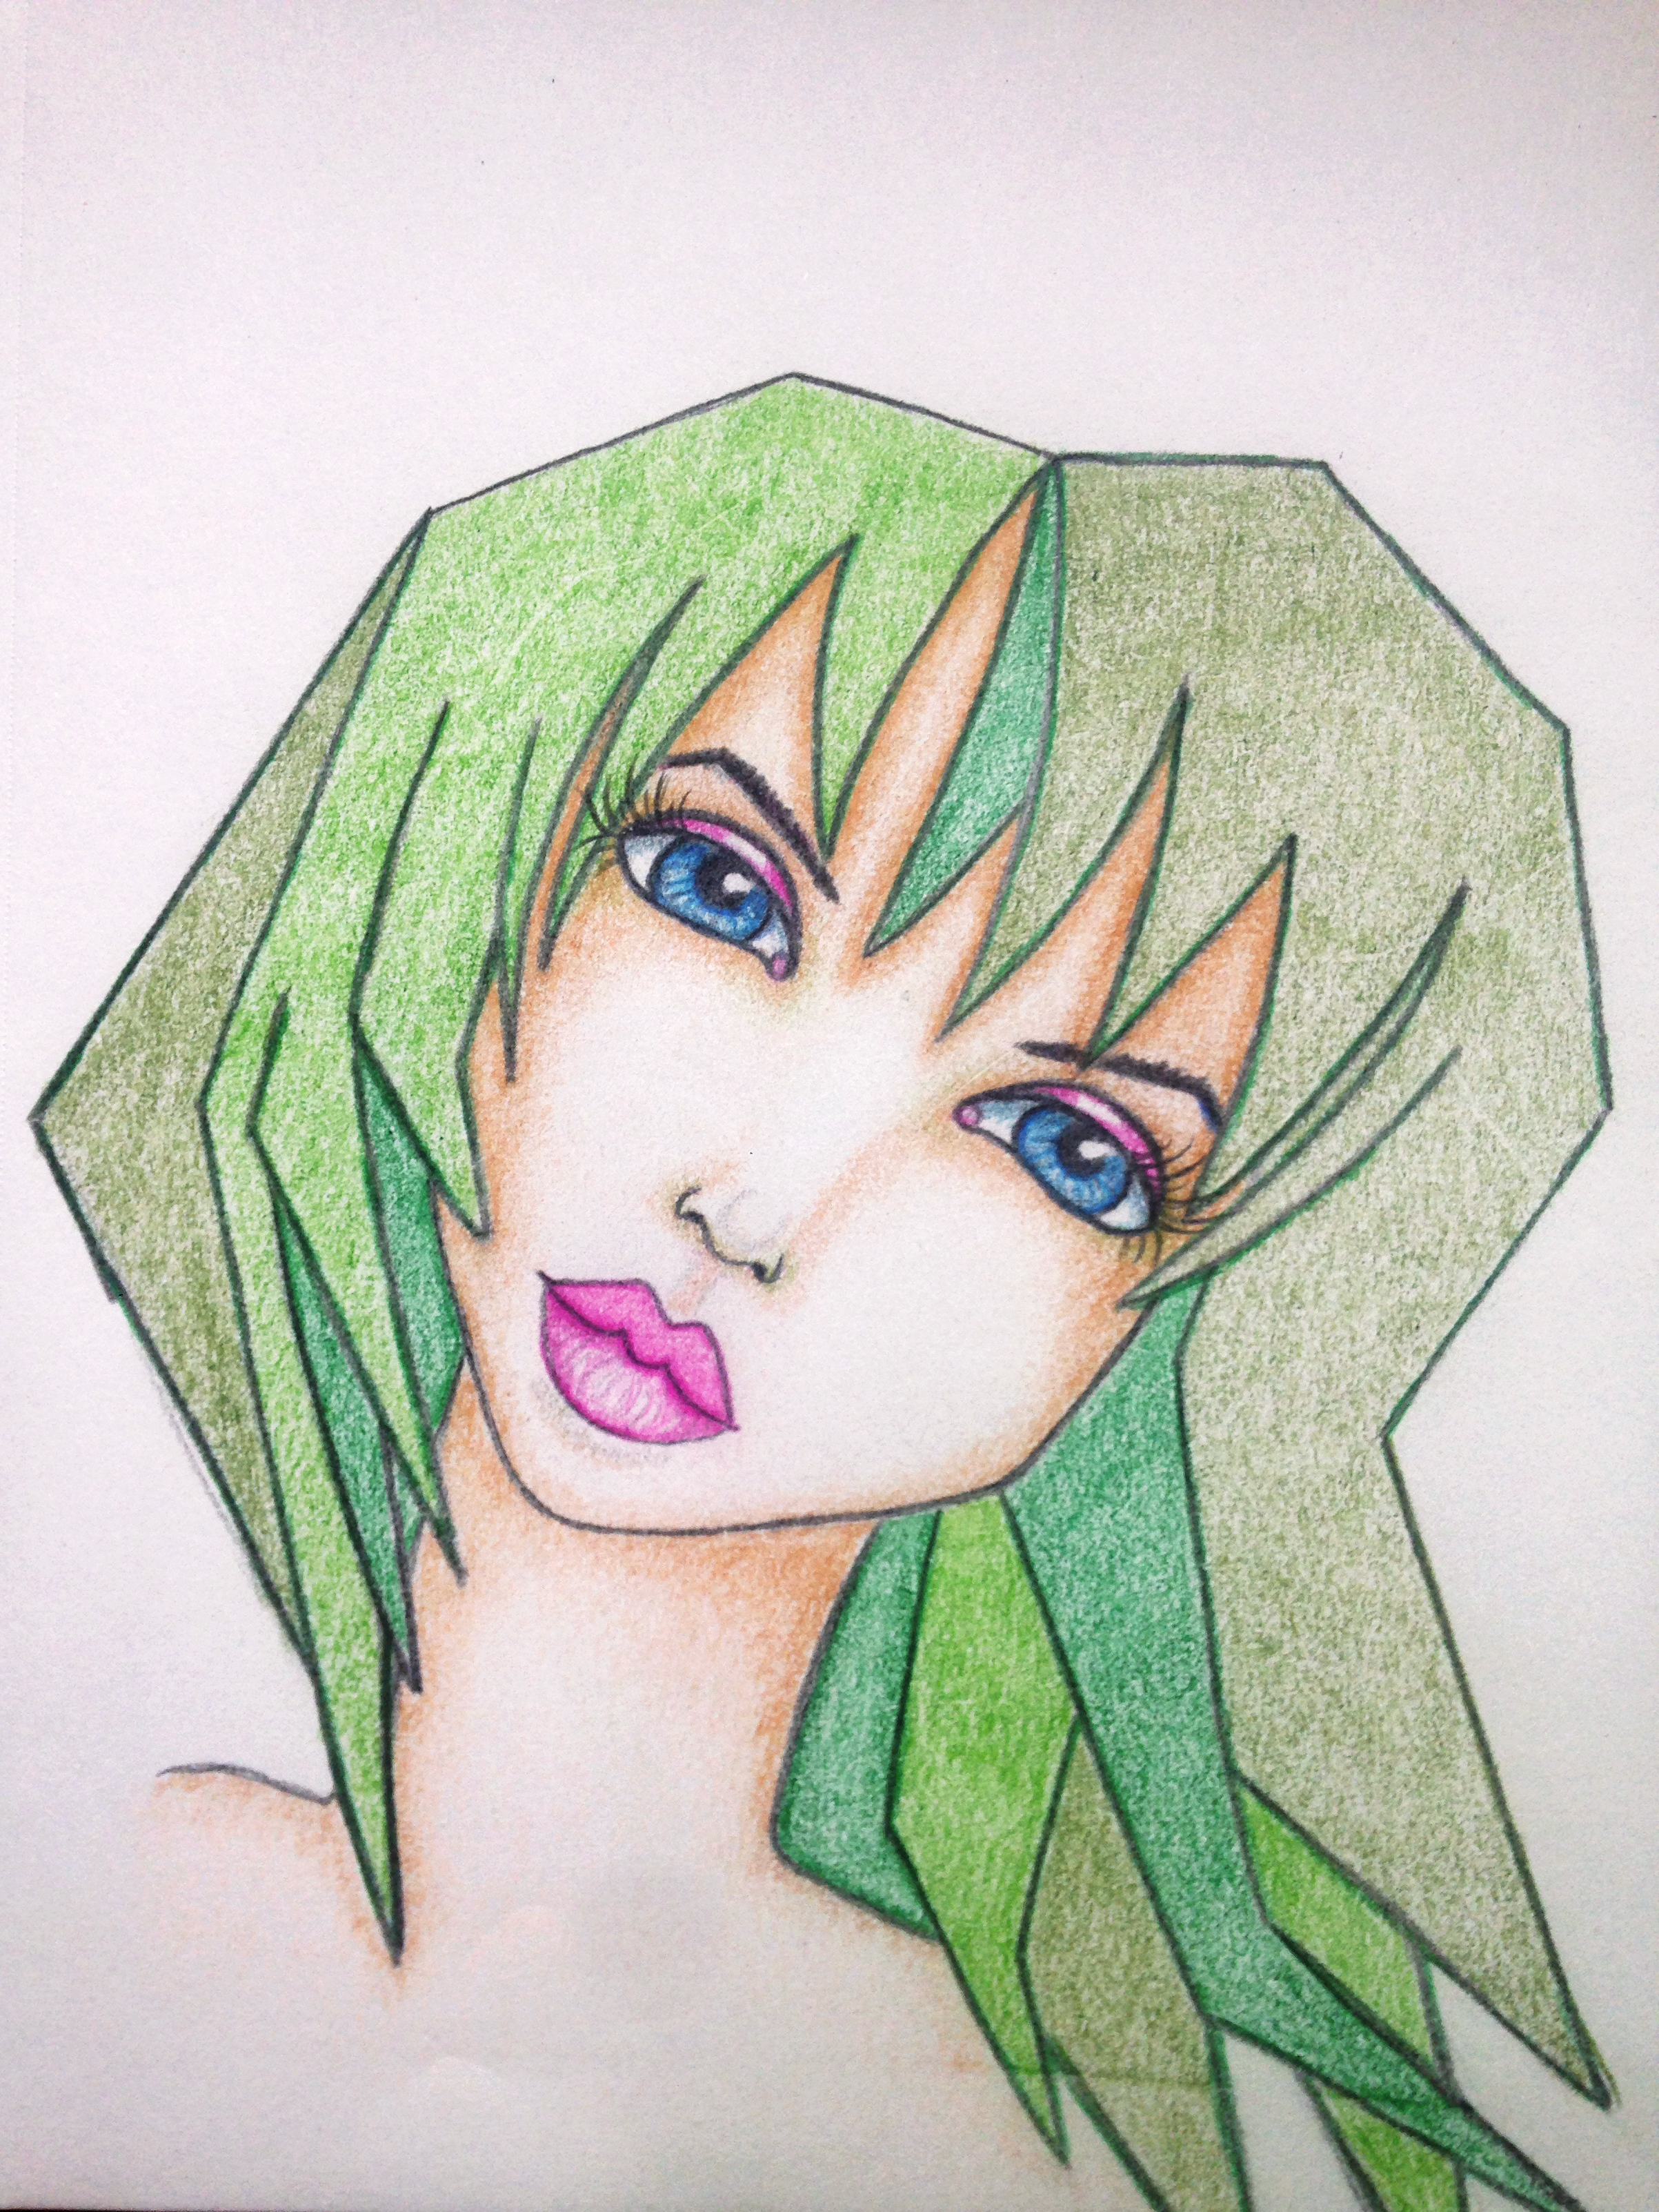 Fun Fab Face 2/100. Colored pencil drawing of cute girl with green spiky hair. Artwork By Corrinna Johnson. 100 Fun Fab Faces Drawing Challenge Hosted By Karen Campbell.